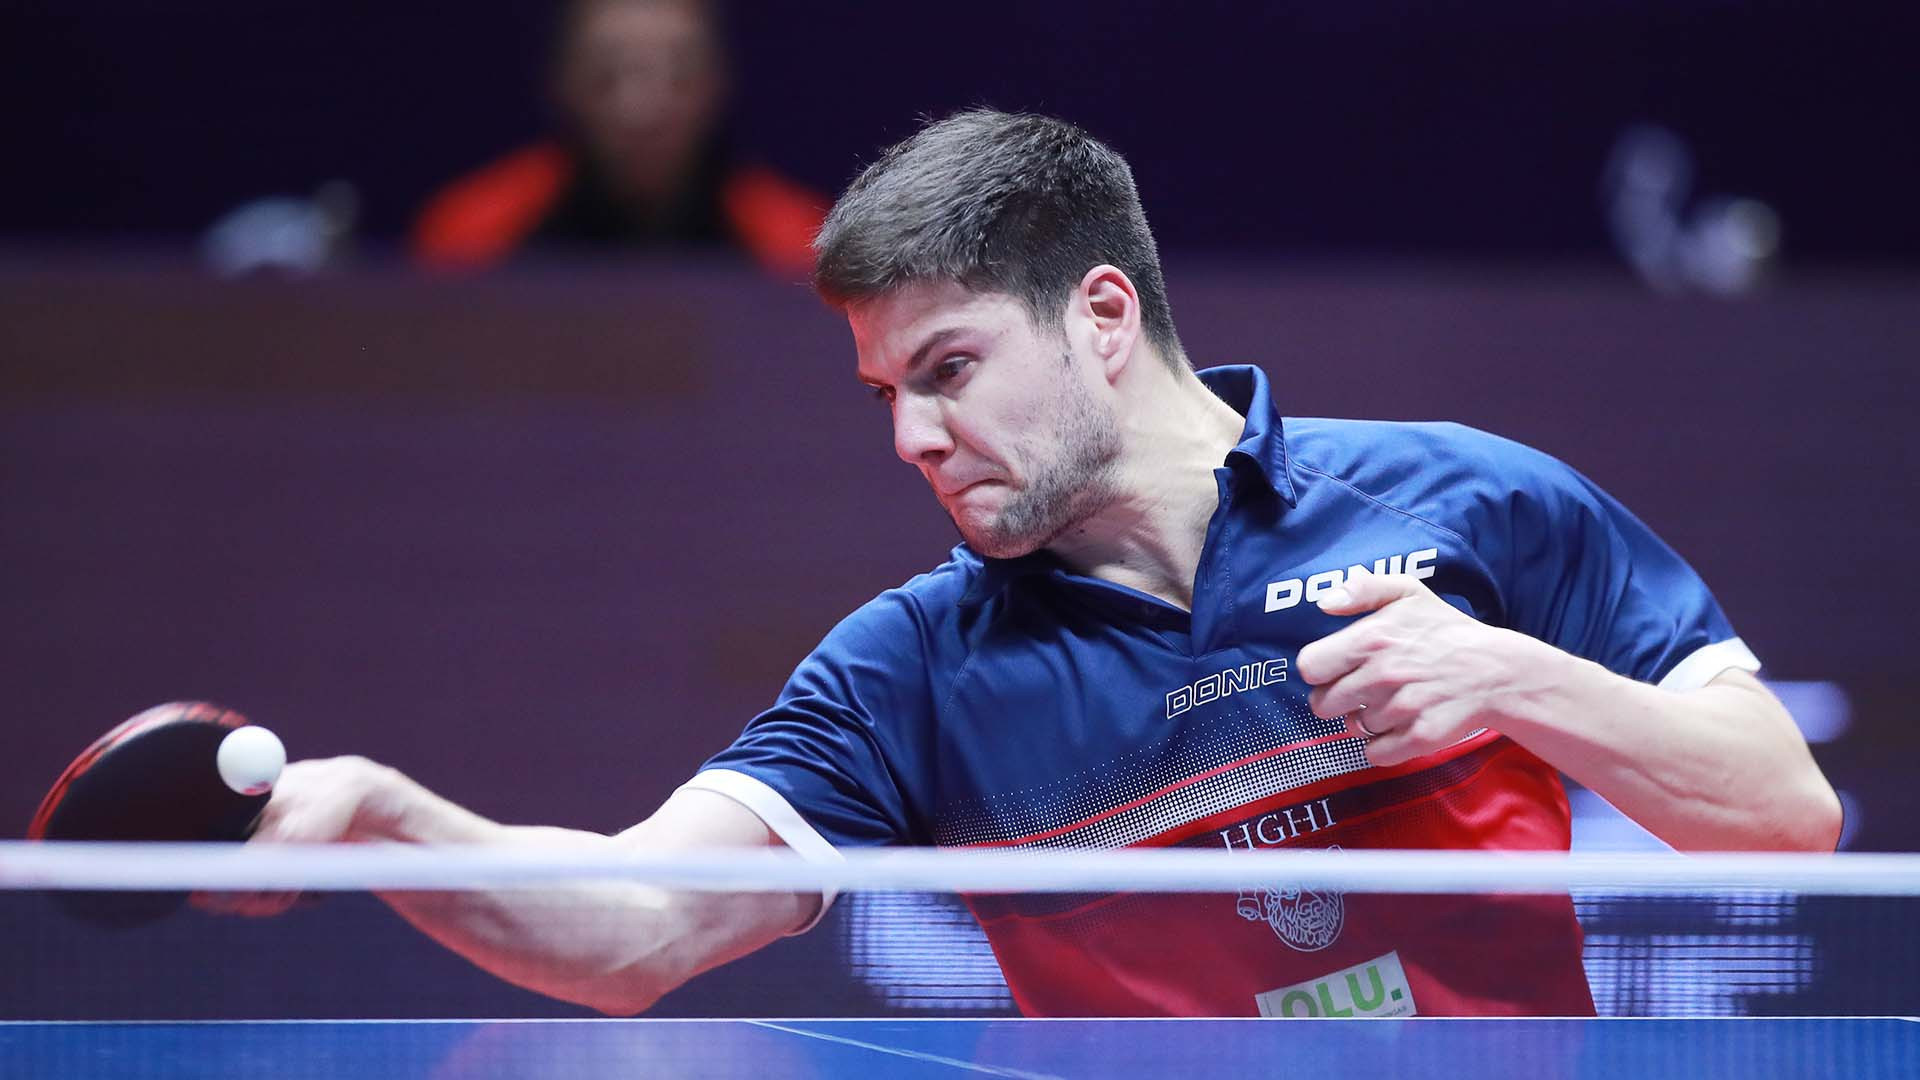 Ovtcharov earns place in men's singles final at ITTF World Tour Grand Finals